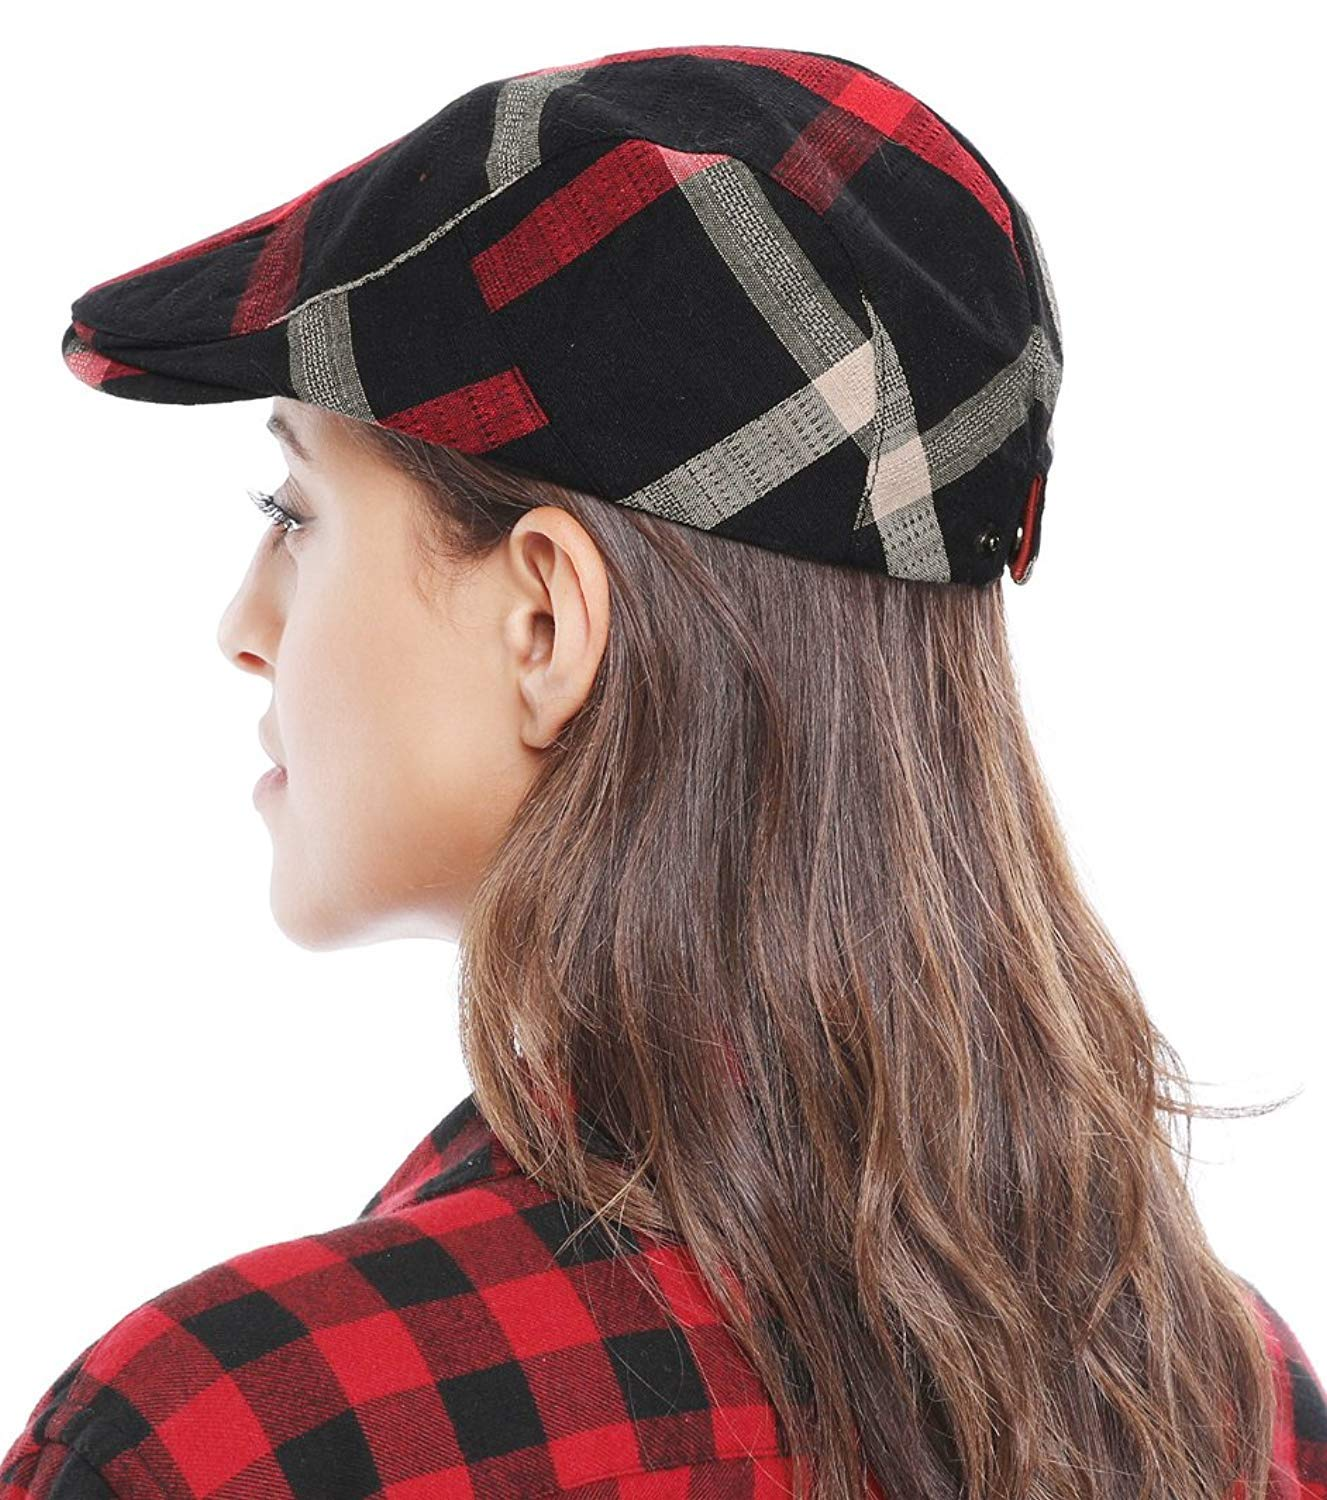 Bellady Adult Peaked Simple Color Plaid Newsboy Cap Beret Hat, Black_1, One Size